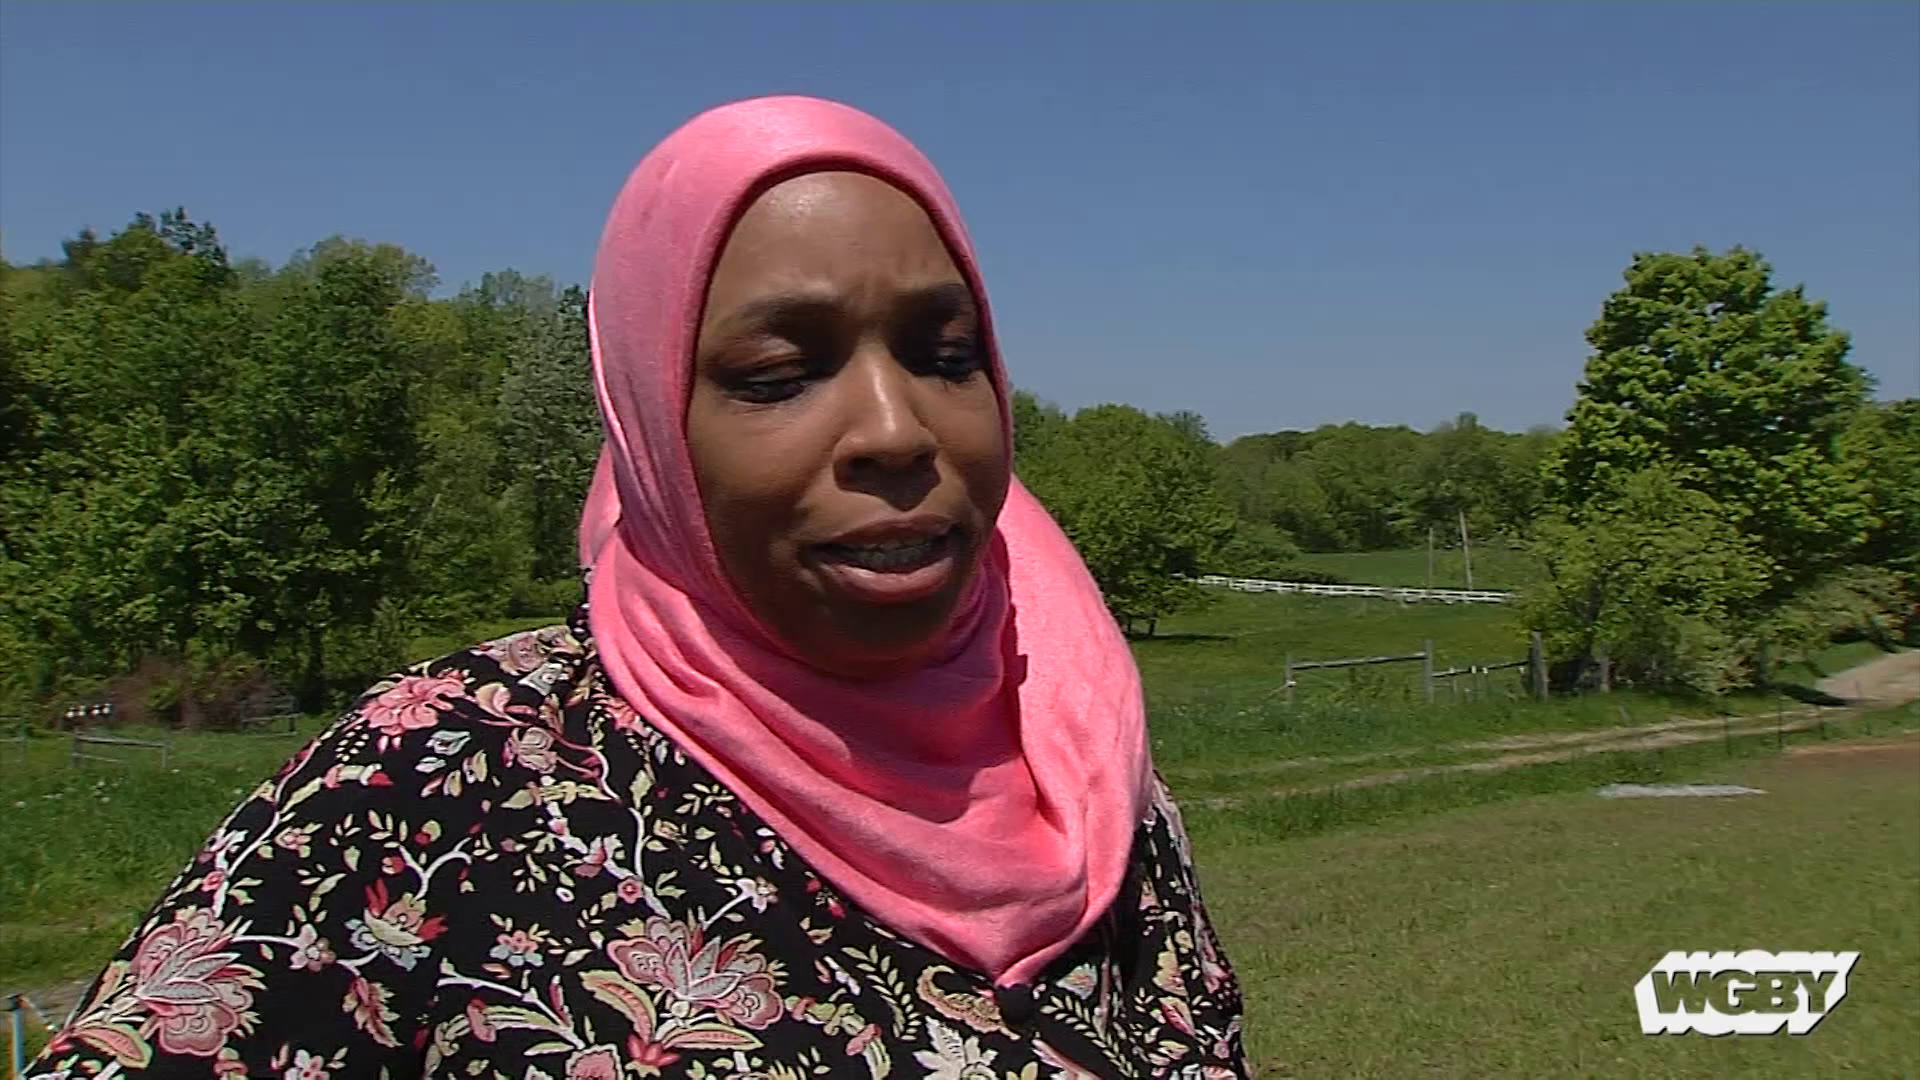 Tahirah Amatul-Wadud will be challenging incumbent Congressman Richard Neal for the Massachusetts 1st Congressional District seat in the Democratic primary.